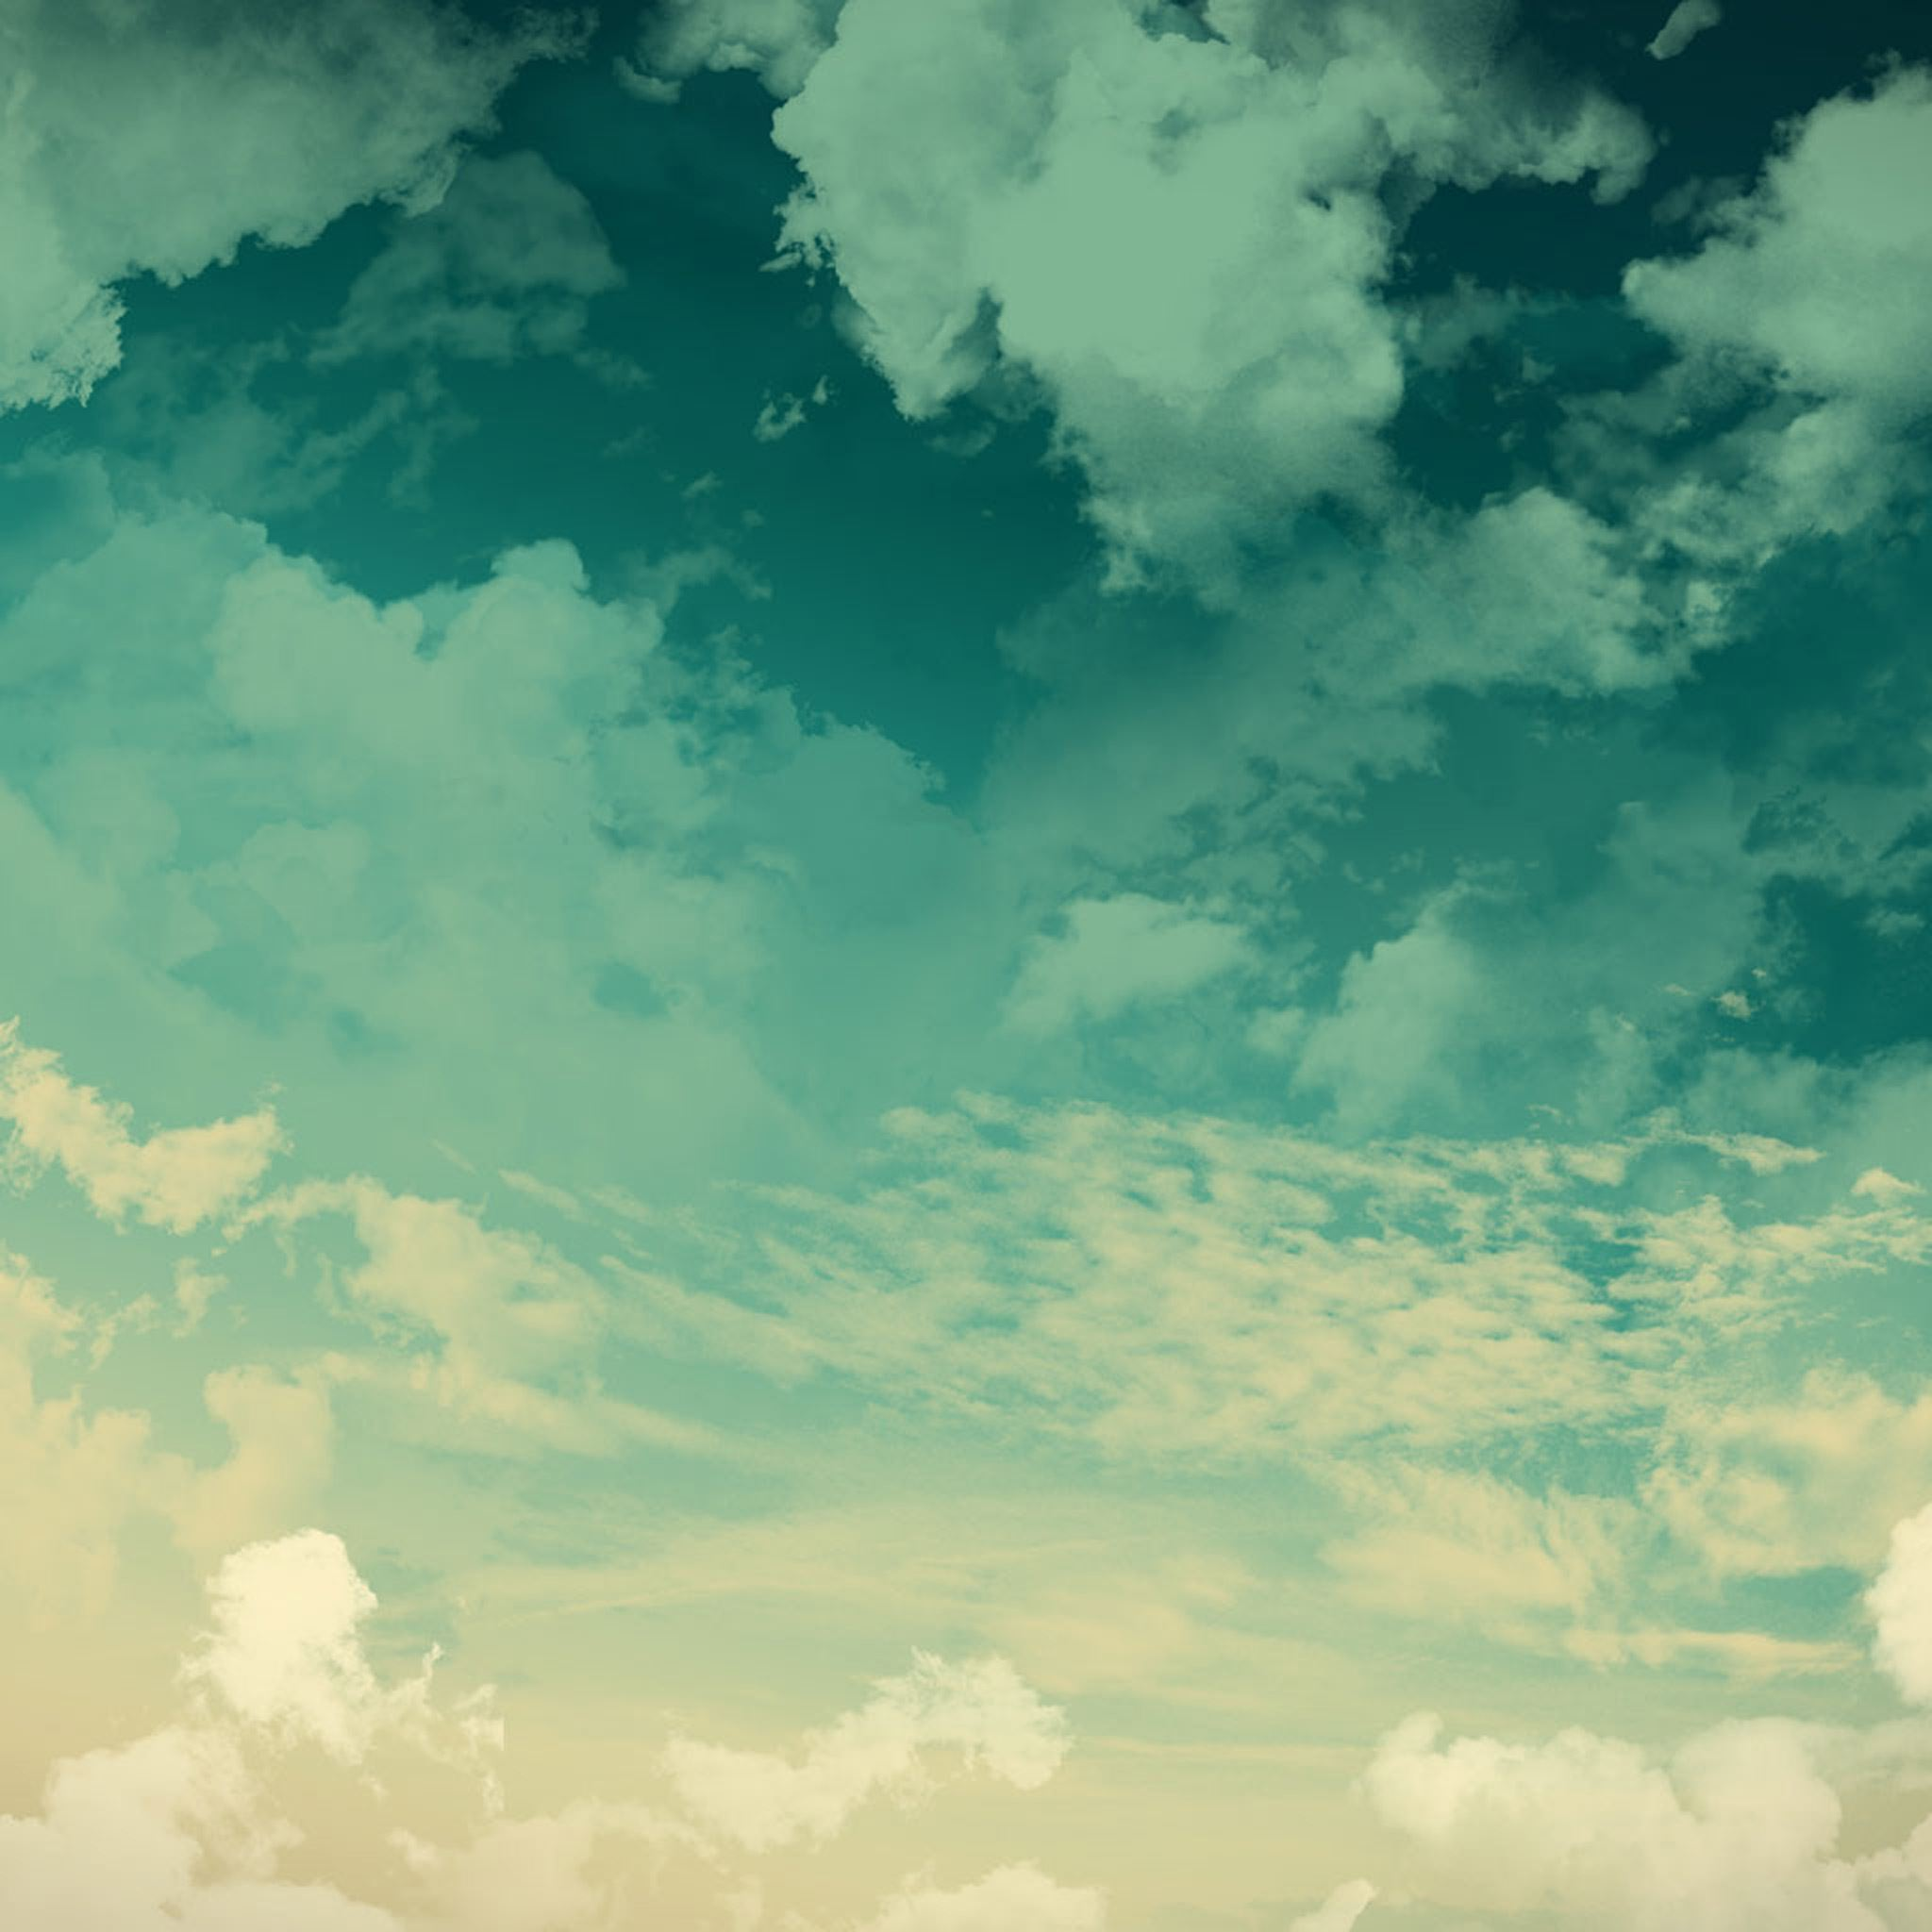 Nature Sky Clouds Sunny Landscape iPad Air wallpaper